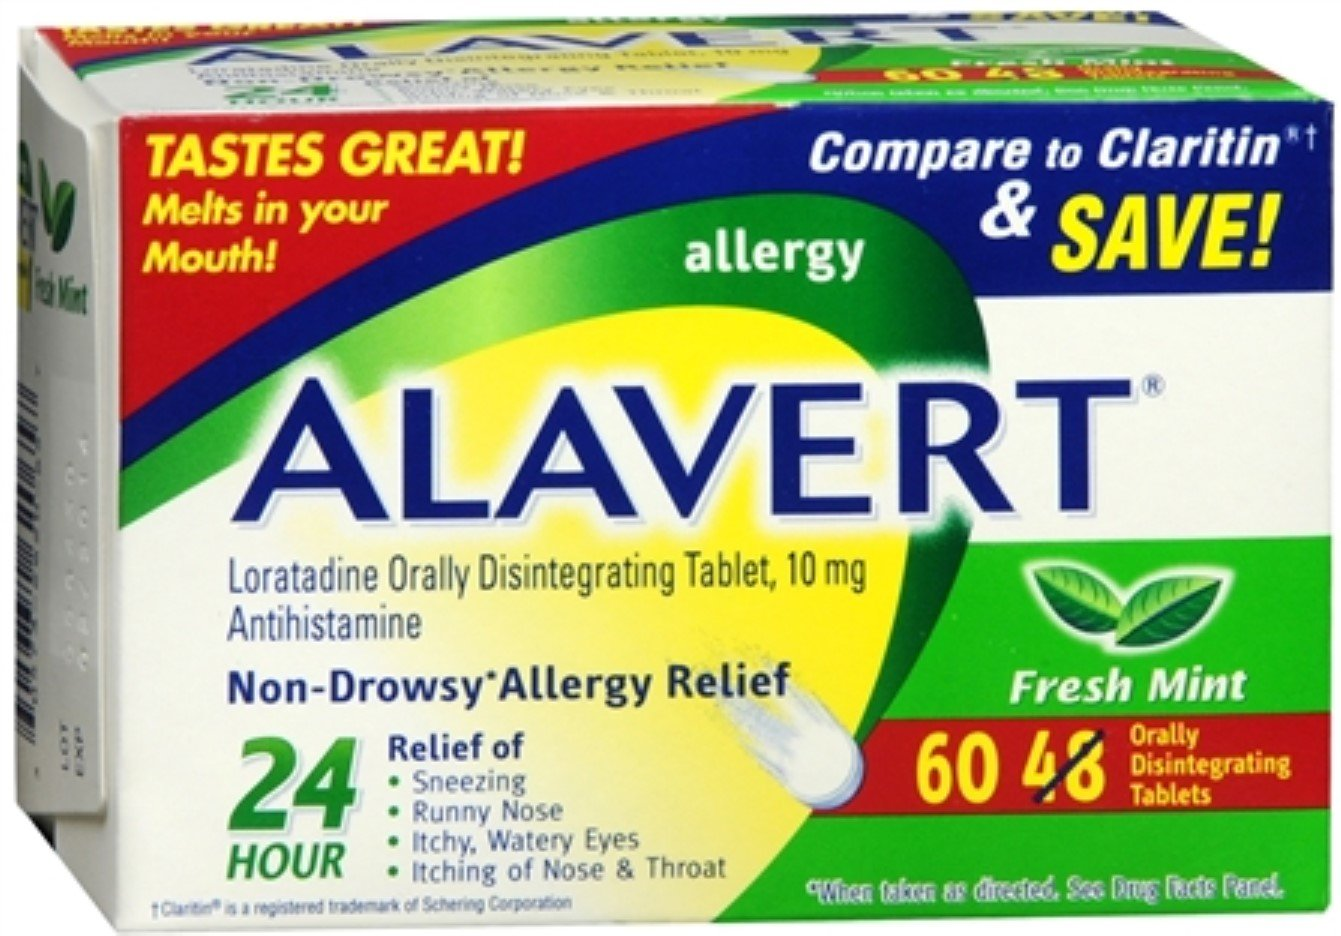 Alavert 24 Hour Orally Disintegrating Tablets Fresh Mint 60 Tablets (Pack of 5) by Alavert